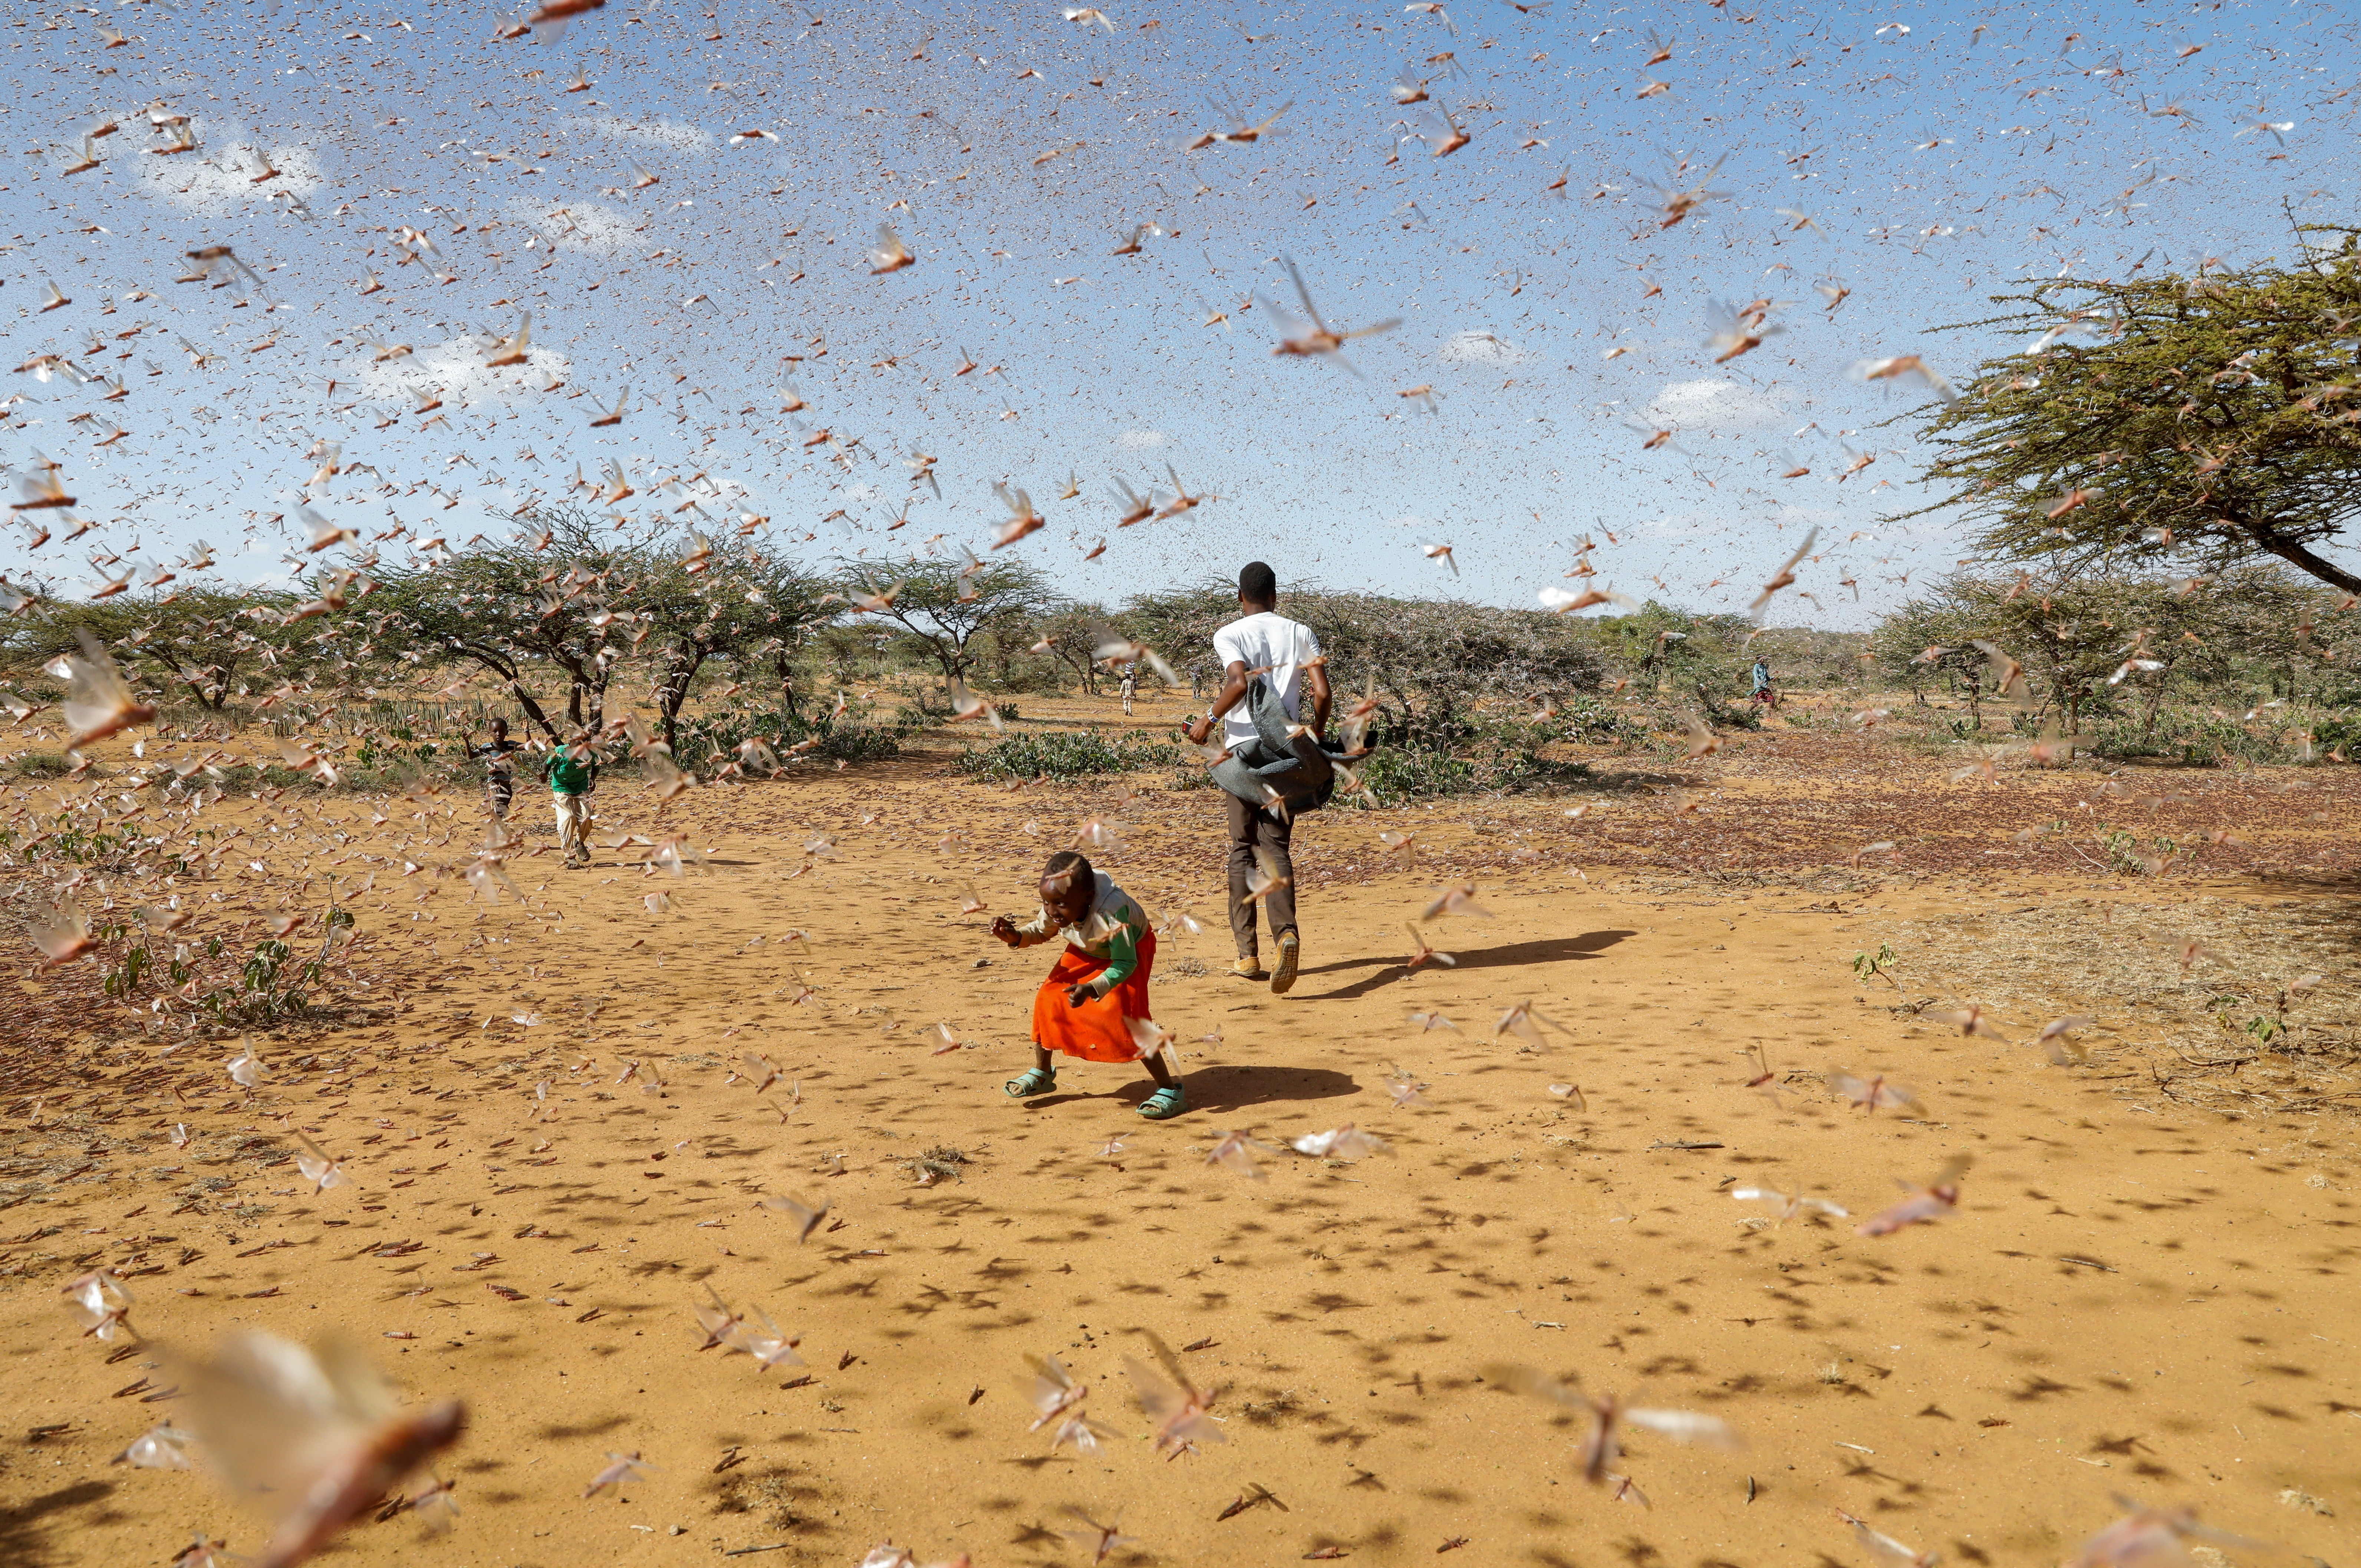 A child tries to chase away a swarm of desert locusts in Naiperere, near the town of Rumuruti, Kenya, January 30, 2021.